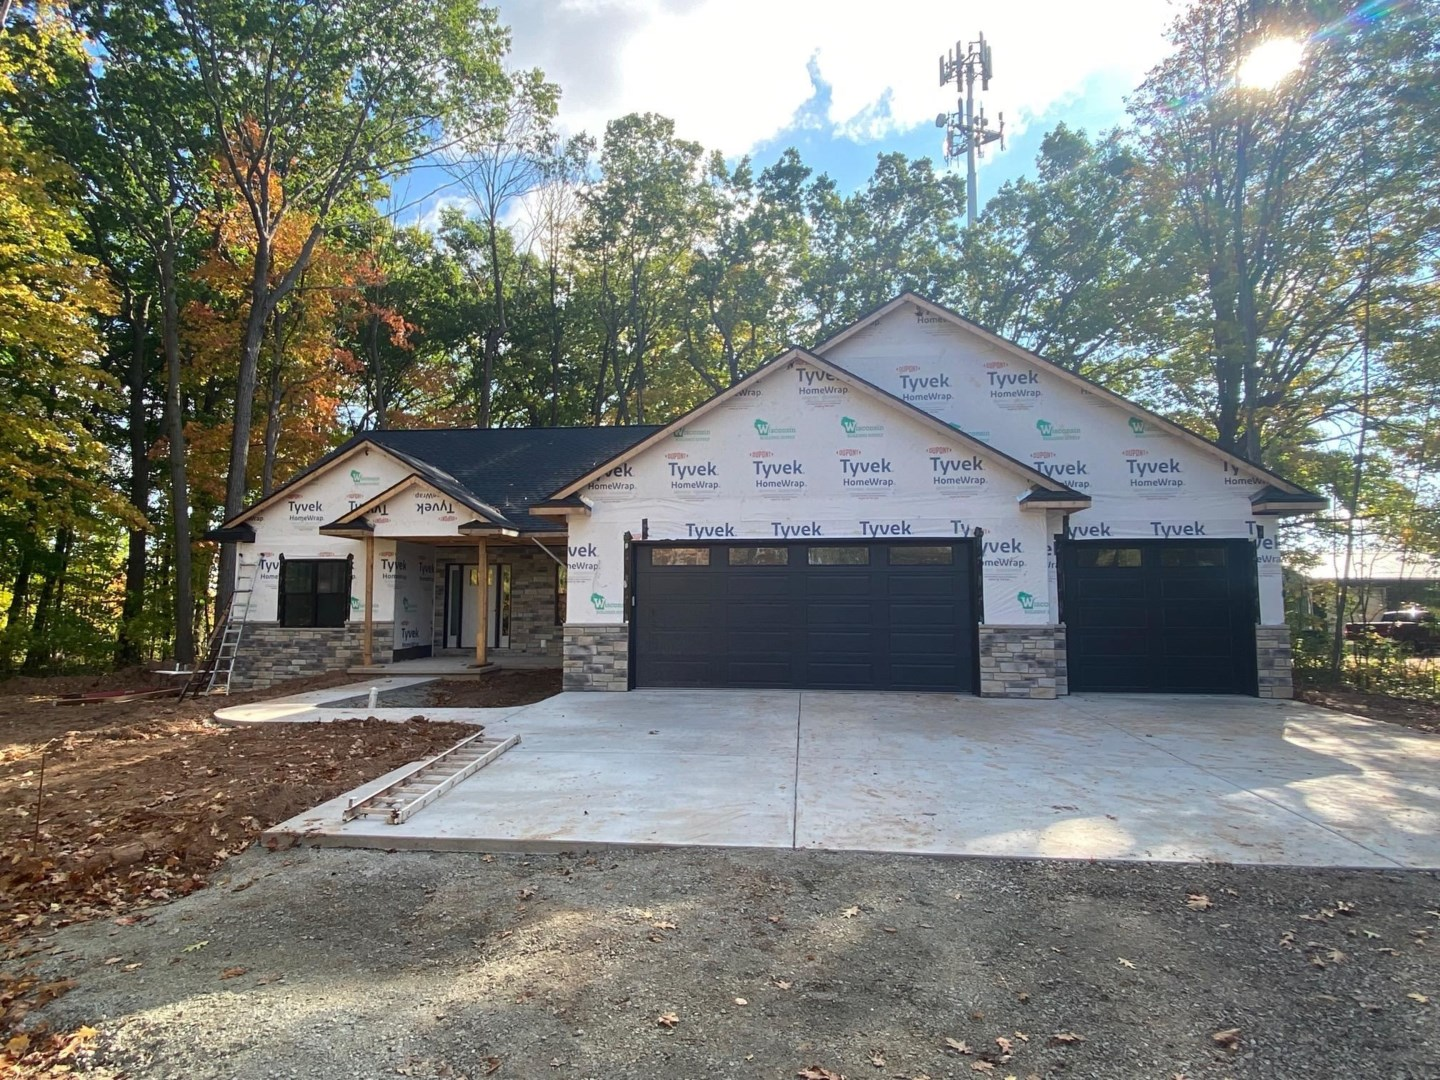 3-Bedroom House In Suamico